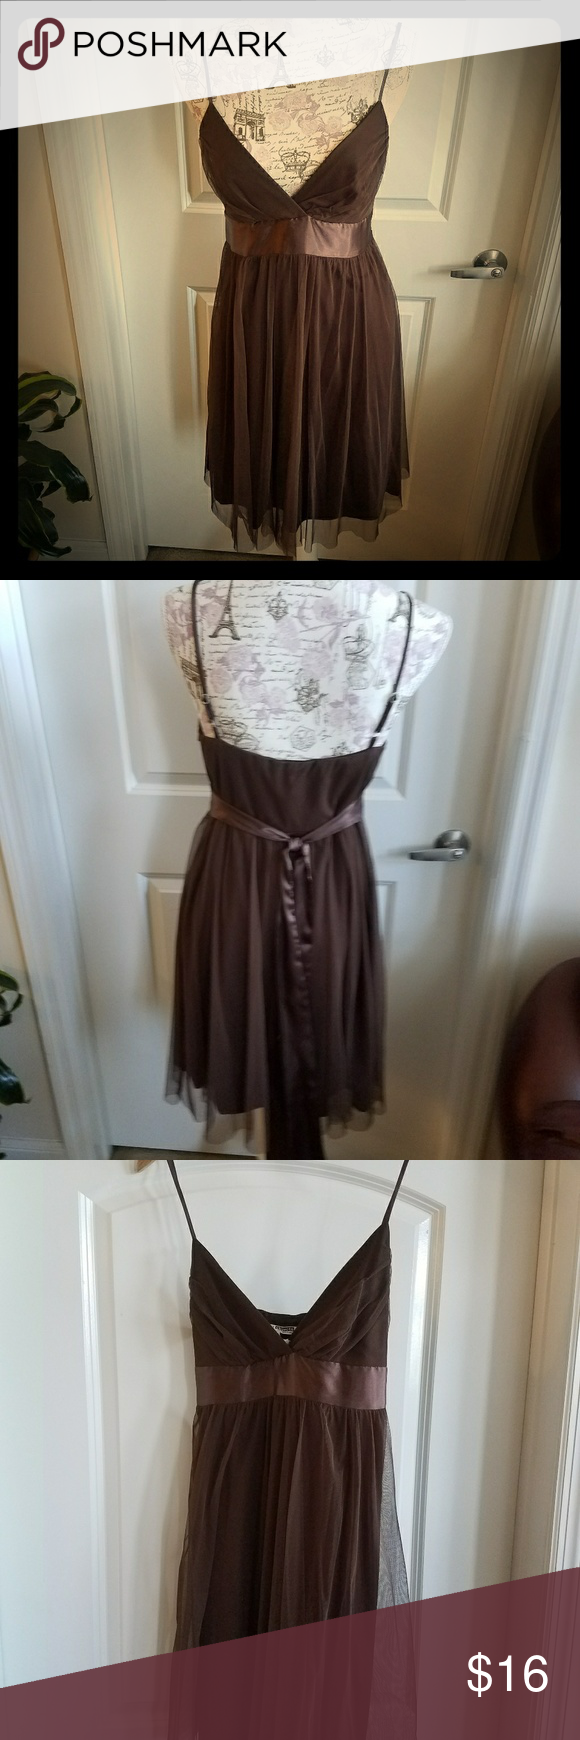 Necessary objects Cocoa Brown dress This comfortable worn Cocoa Brown dress has a satin ribbon that ties across to the back. This has a nylon lining, side zip and adjustable straps. I feel this run a little small if your busty.  Hand wash Necessary Objects Dresses Midi